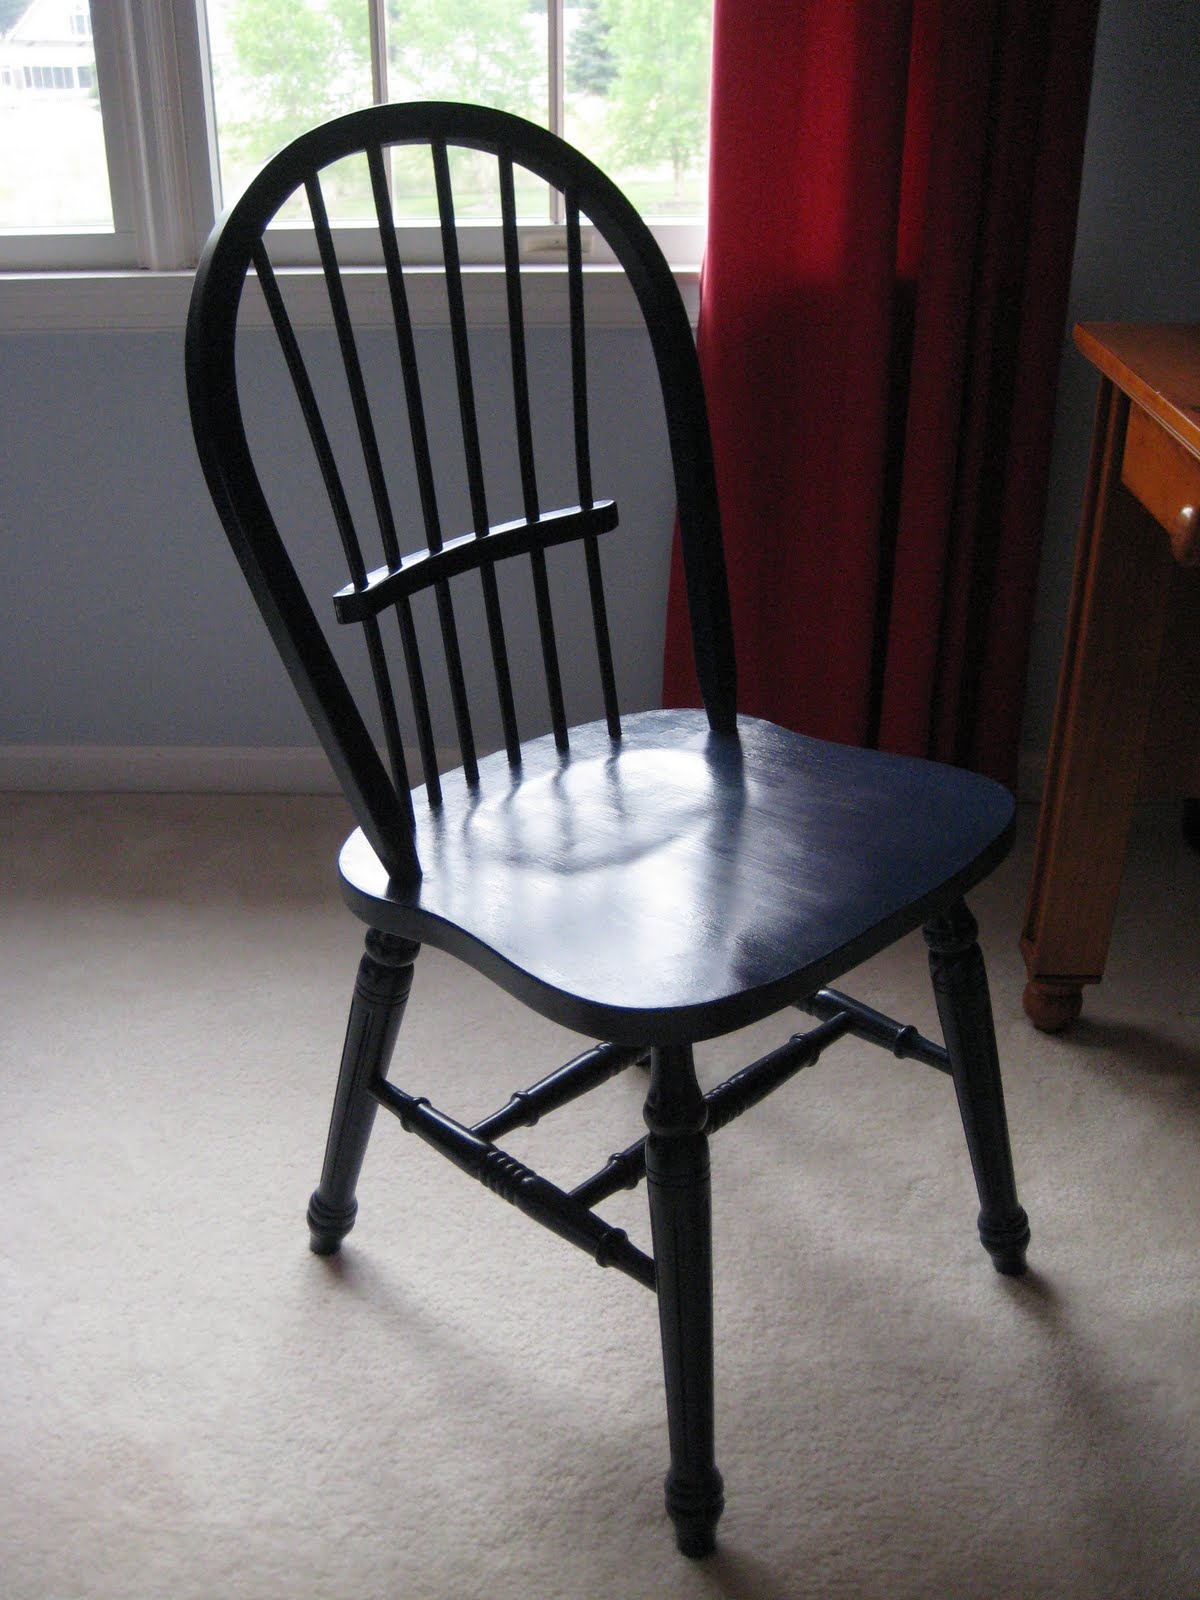 Painting the $20 Chair Navy Blue